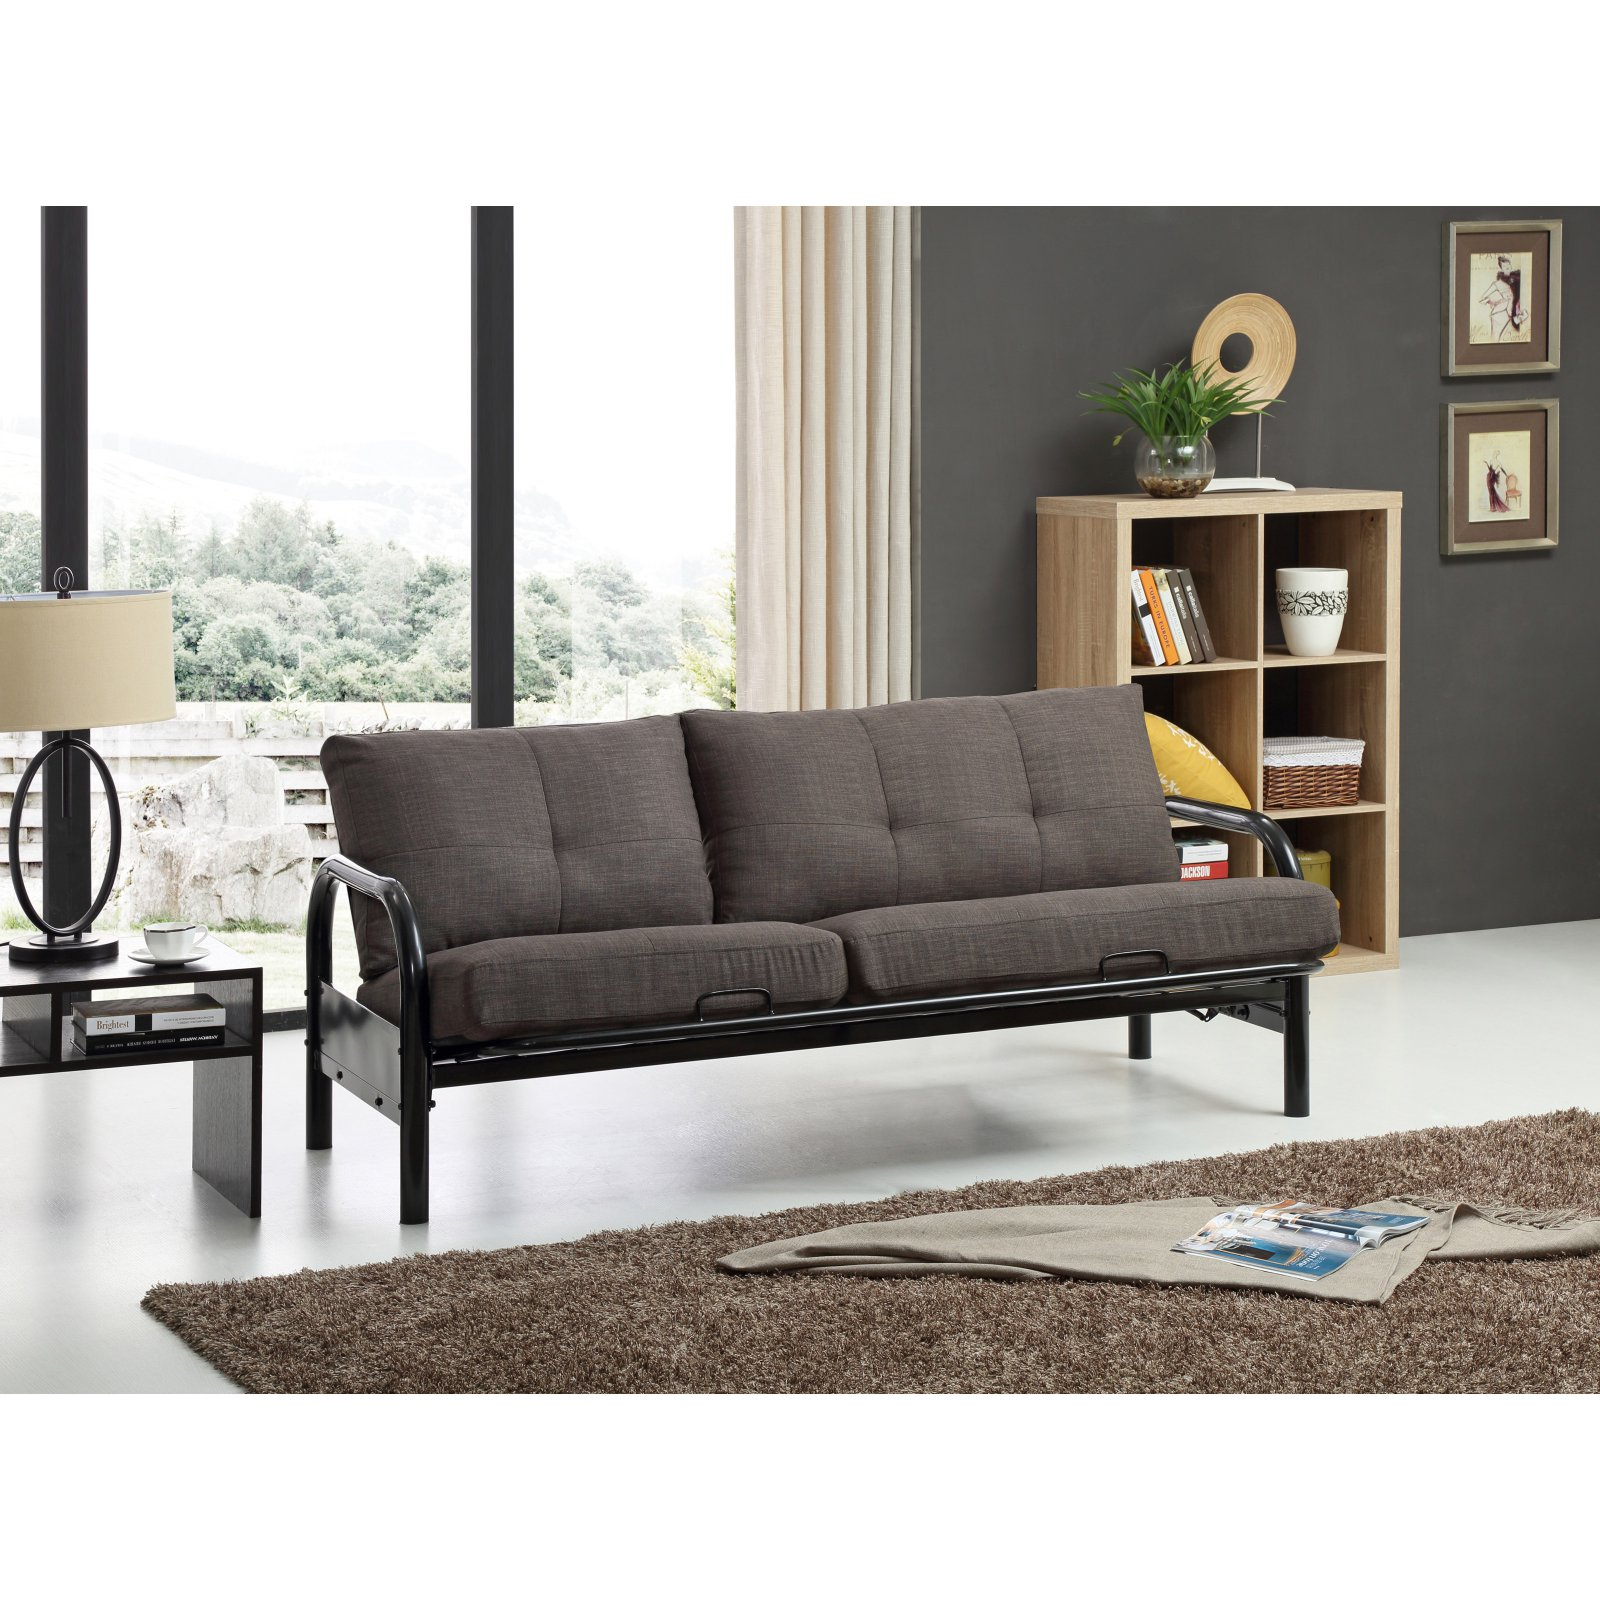 Hodedah Imports Metal Futon Frame by Overstock